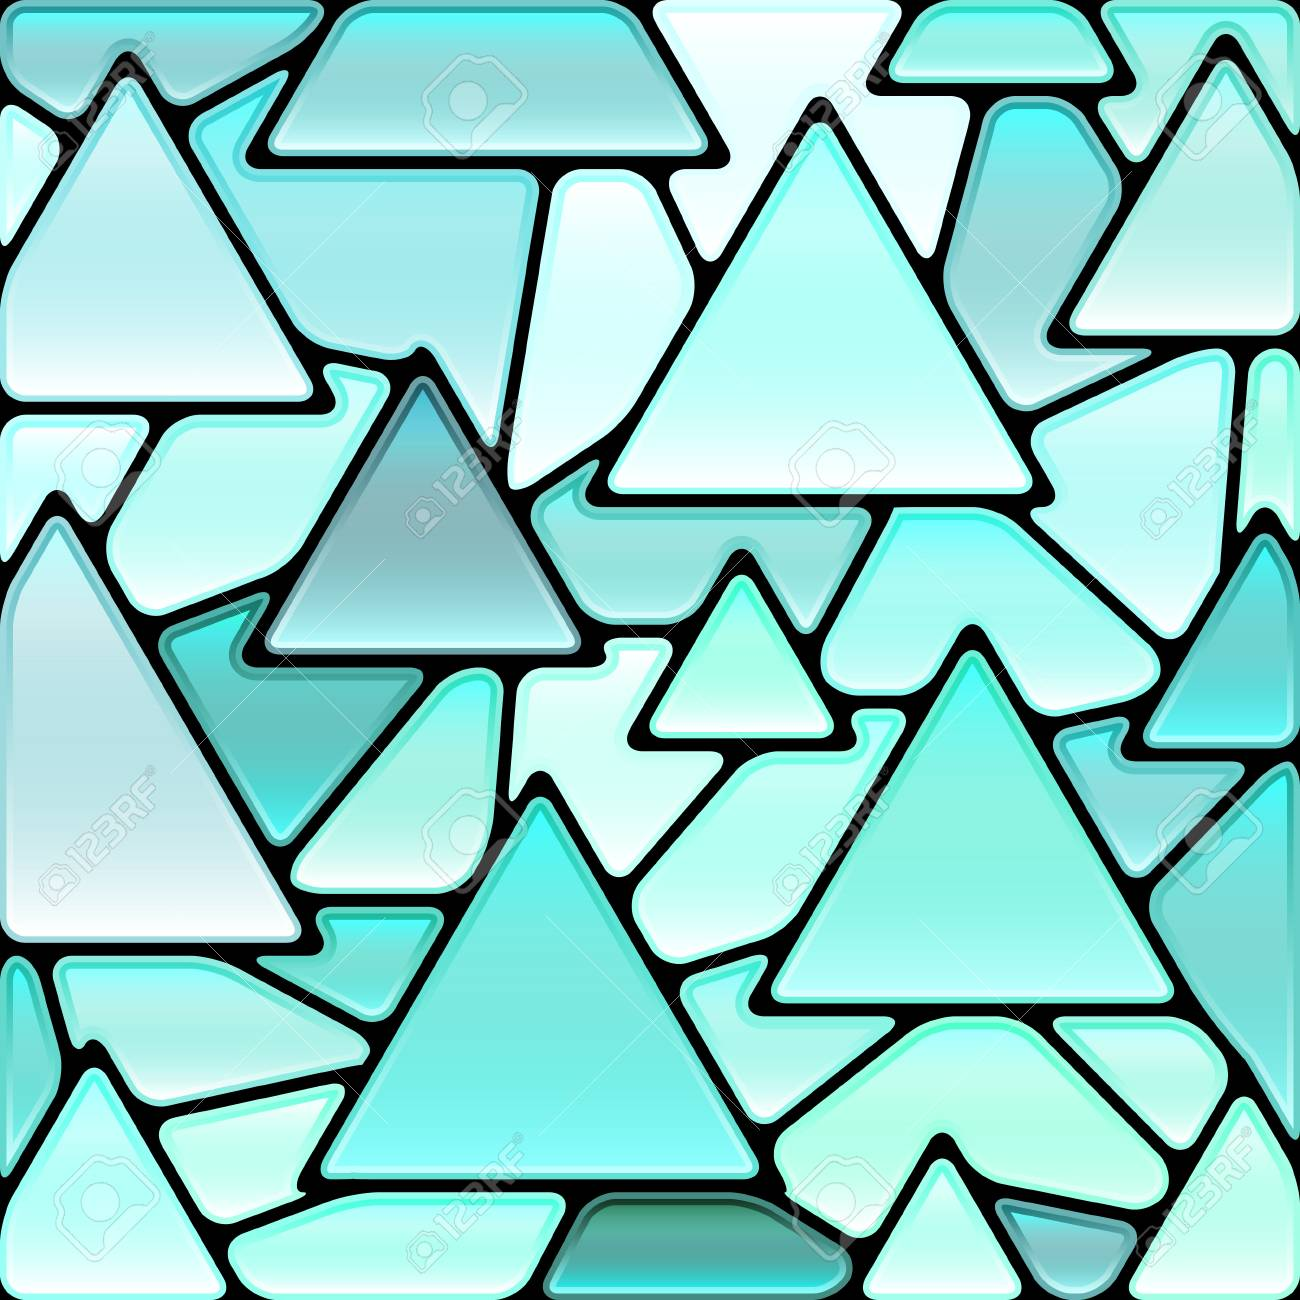 Abstract Vector Stained Glass Mosaic Background Light Blue